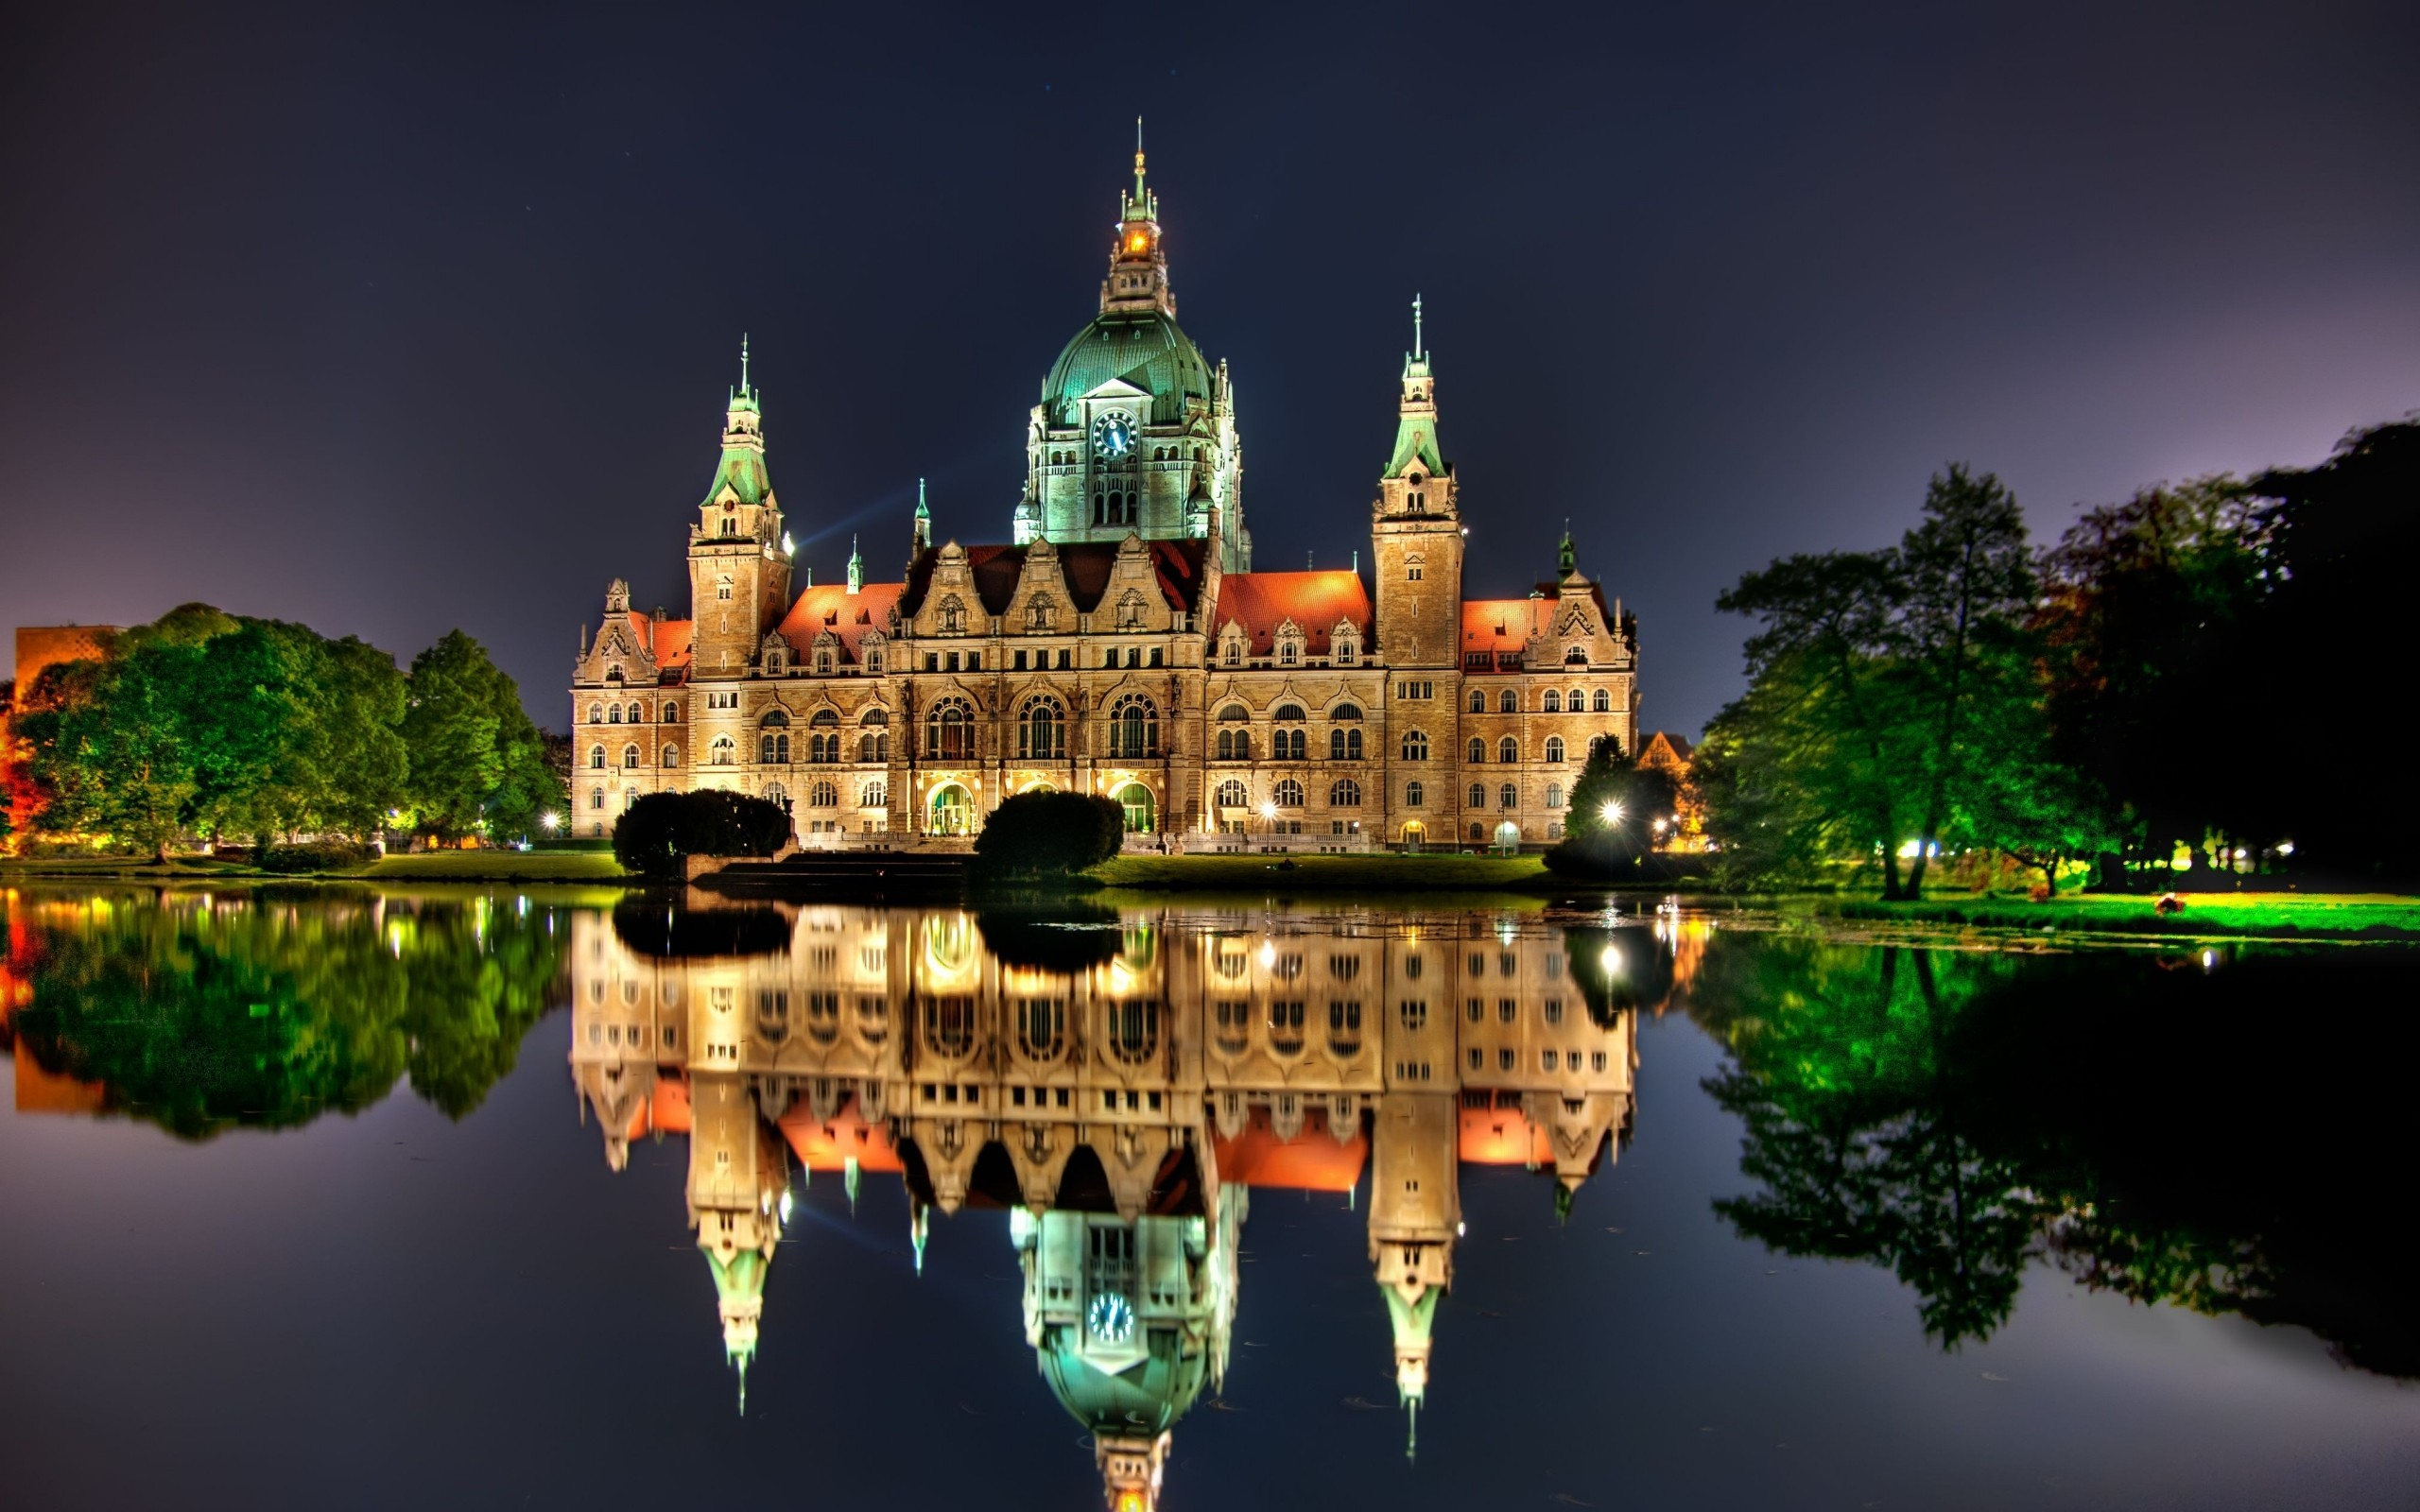 The New City Hall in Hanover, Germany